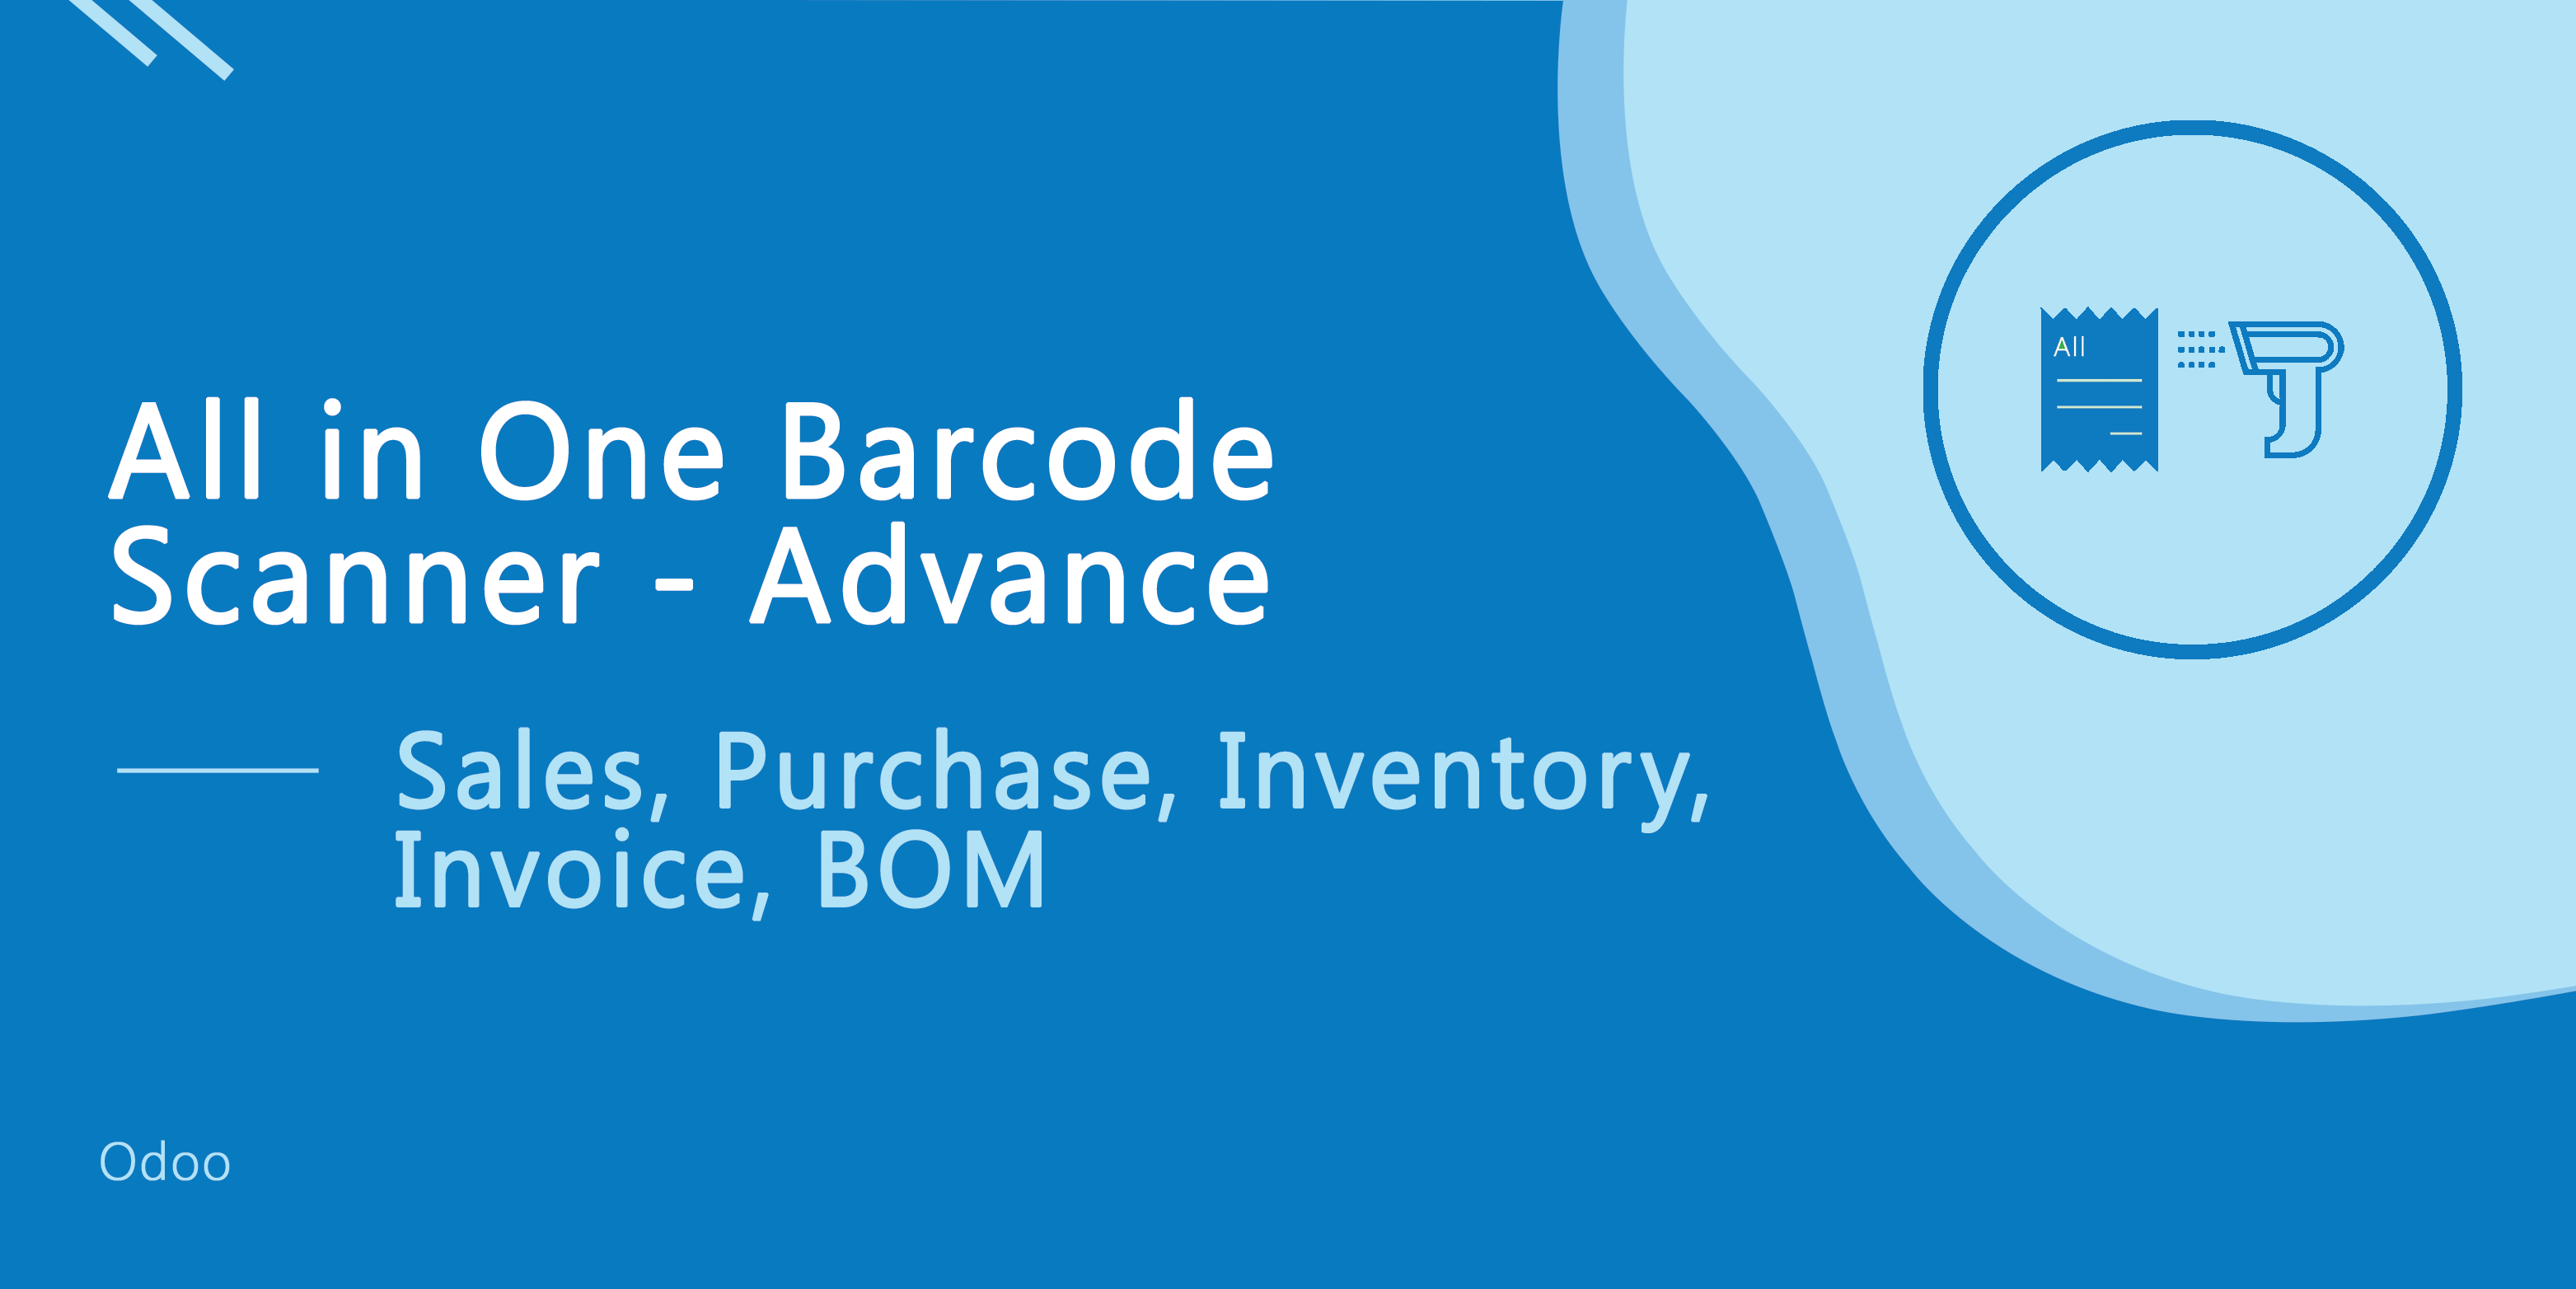 All In One Barcode Scanner Advance